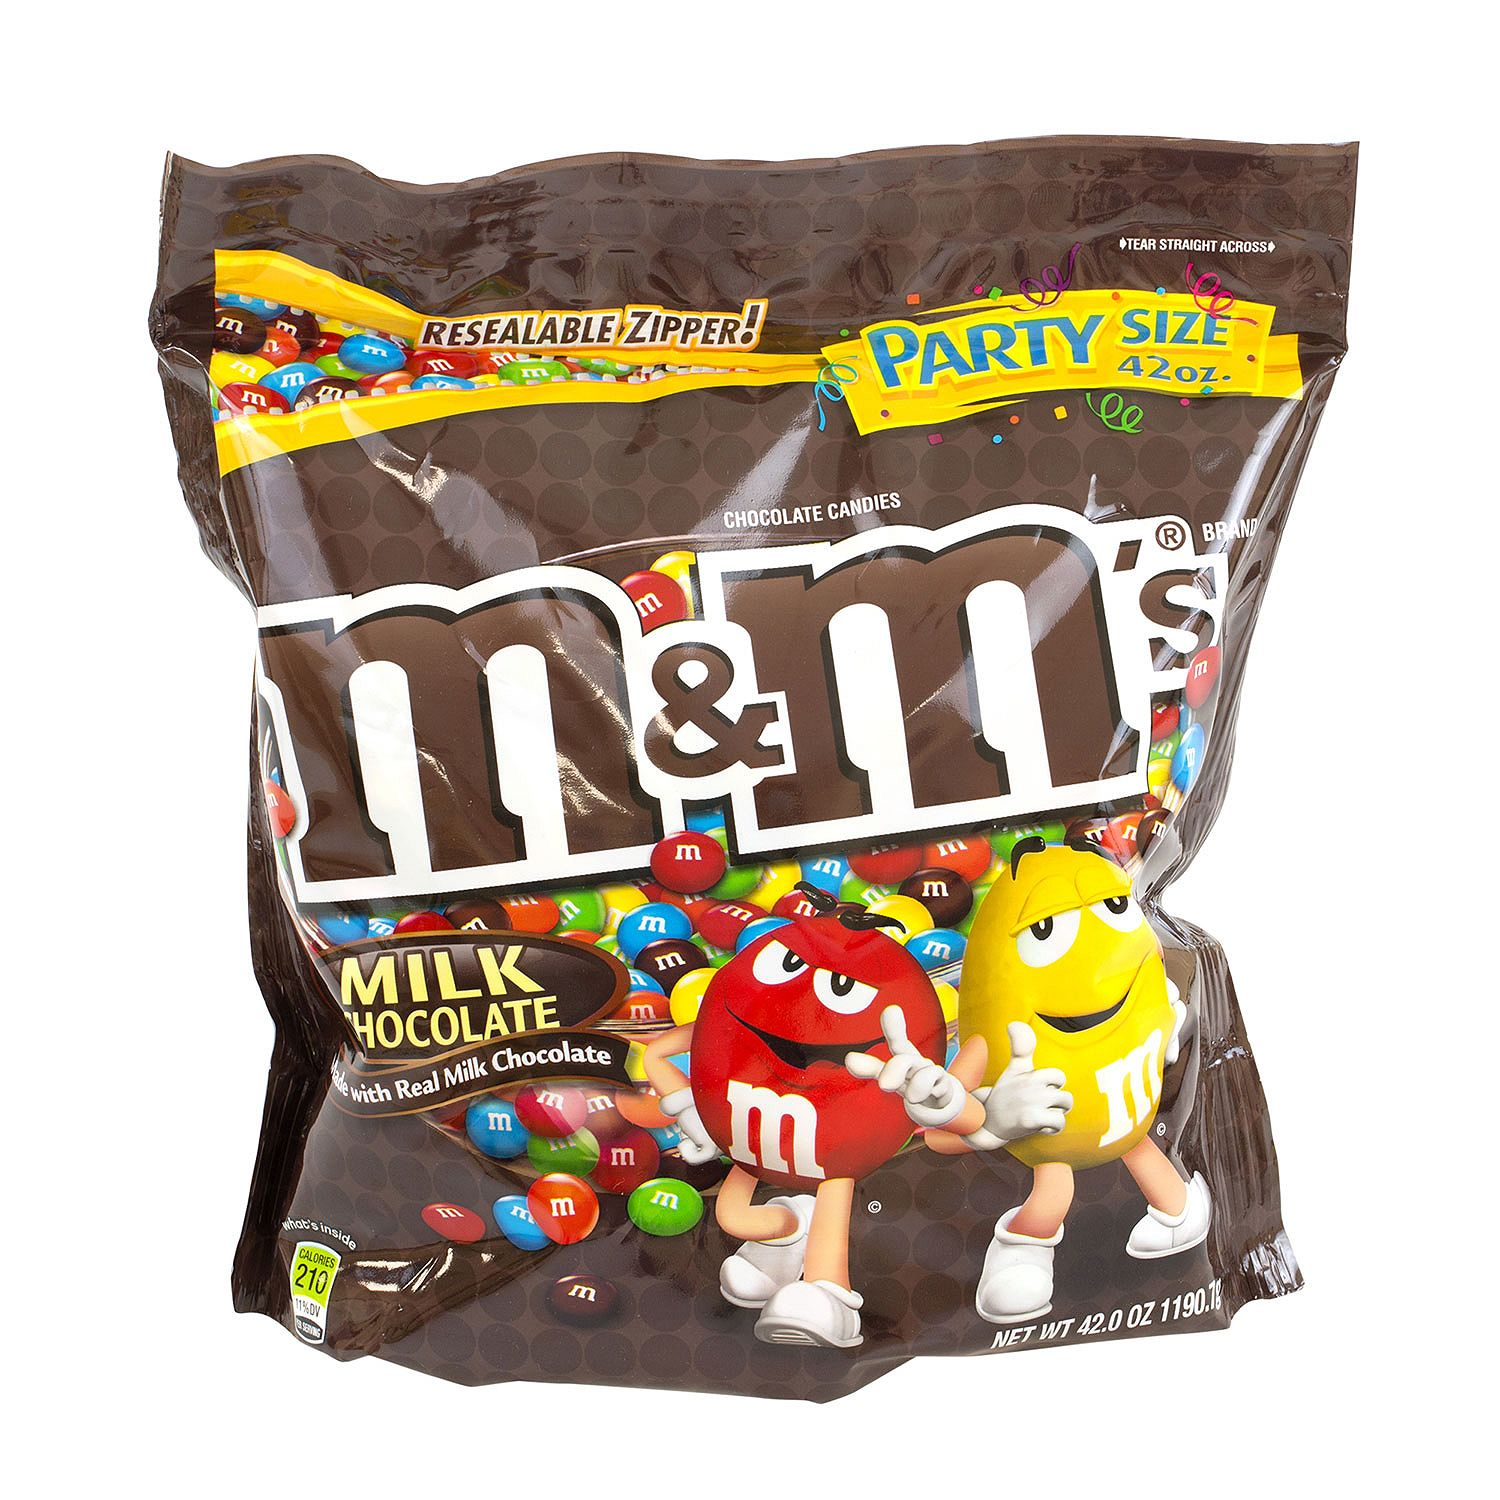 M&M's Plain Chocolate Candies - 42 oz. bag